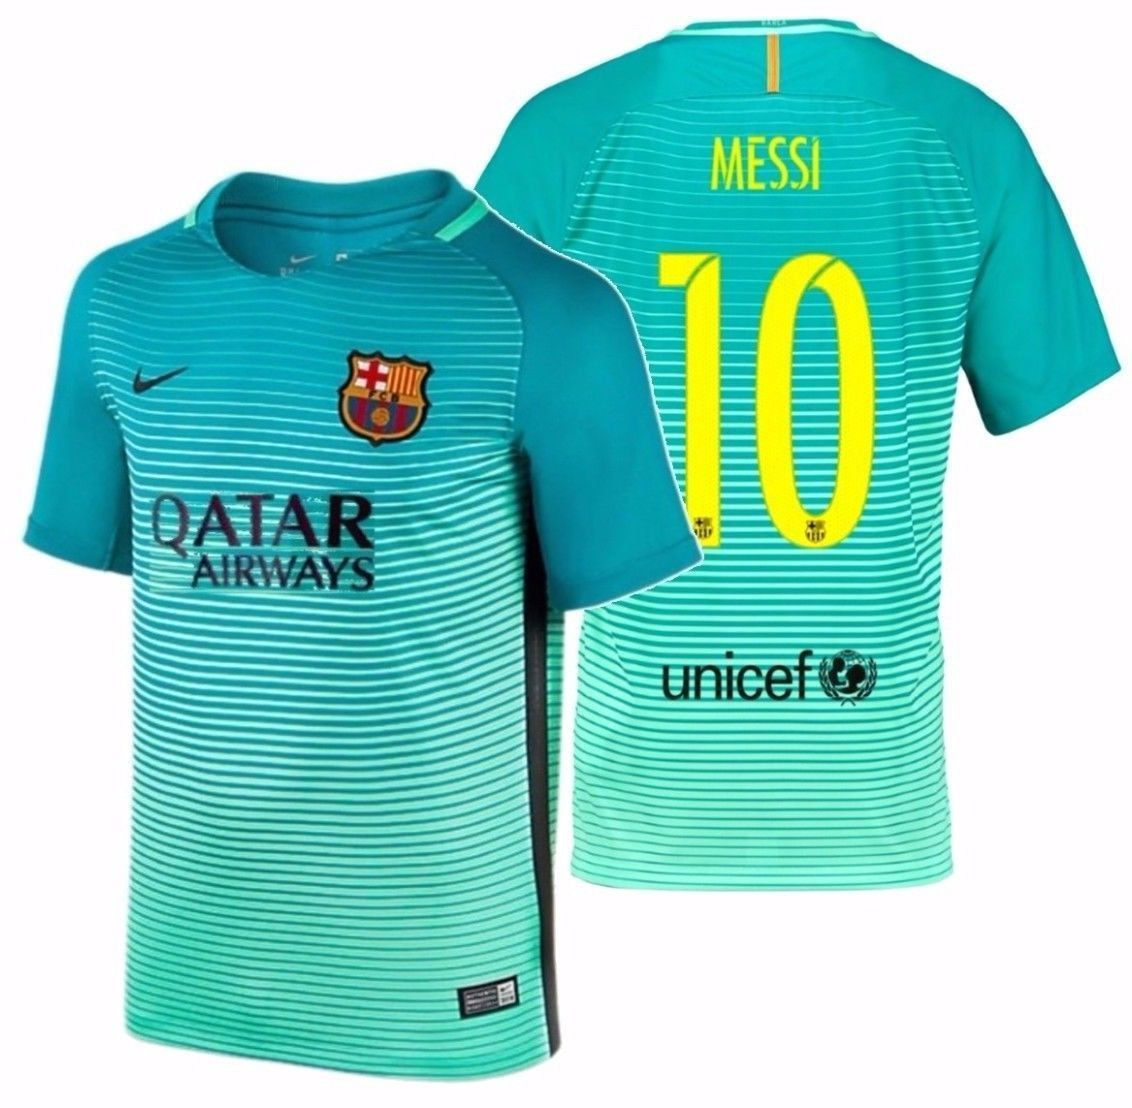 size 40 68e5d 995d5 lionel messi youth soccer jersey